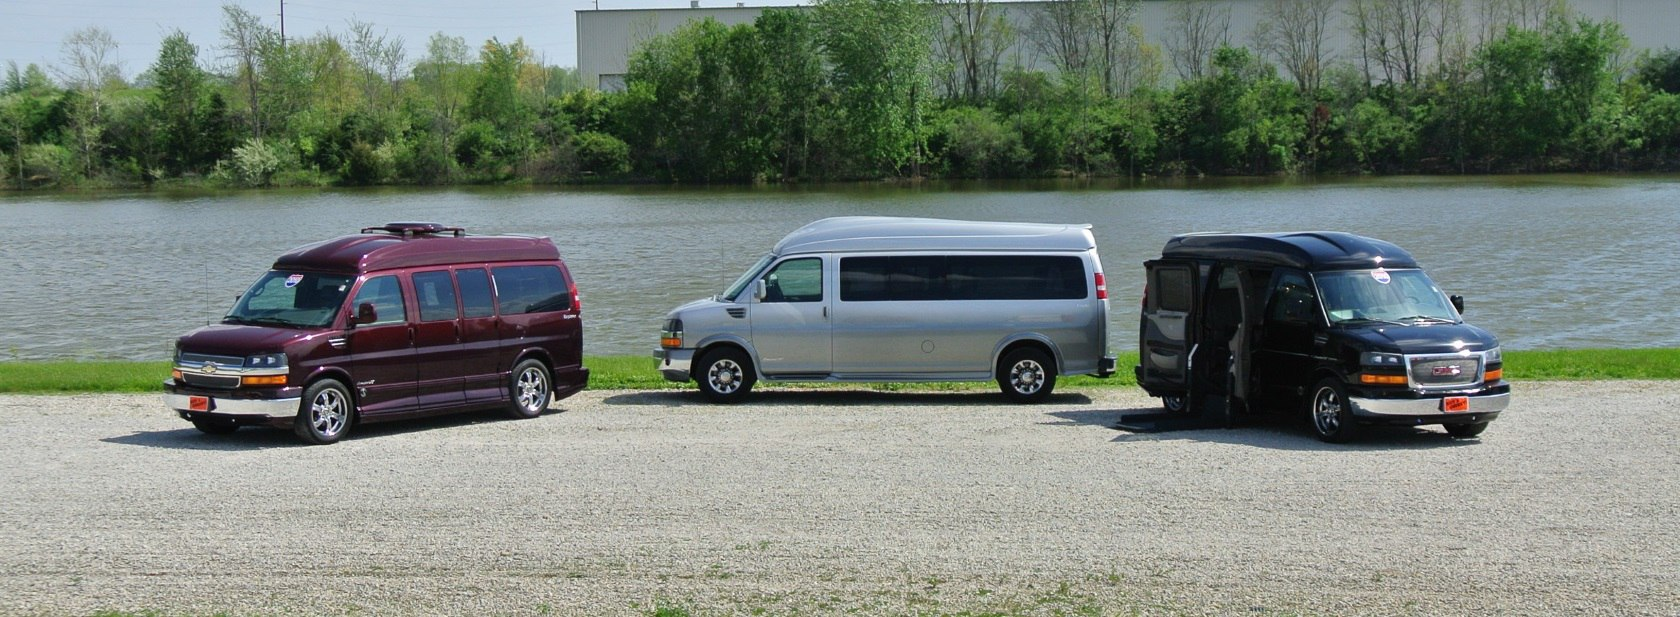 used-gmc-conversion-vans